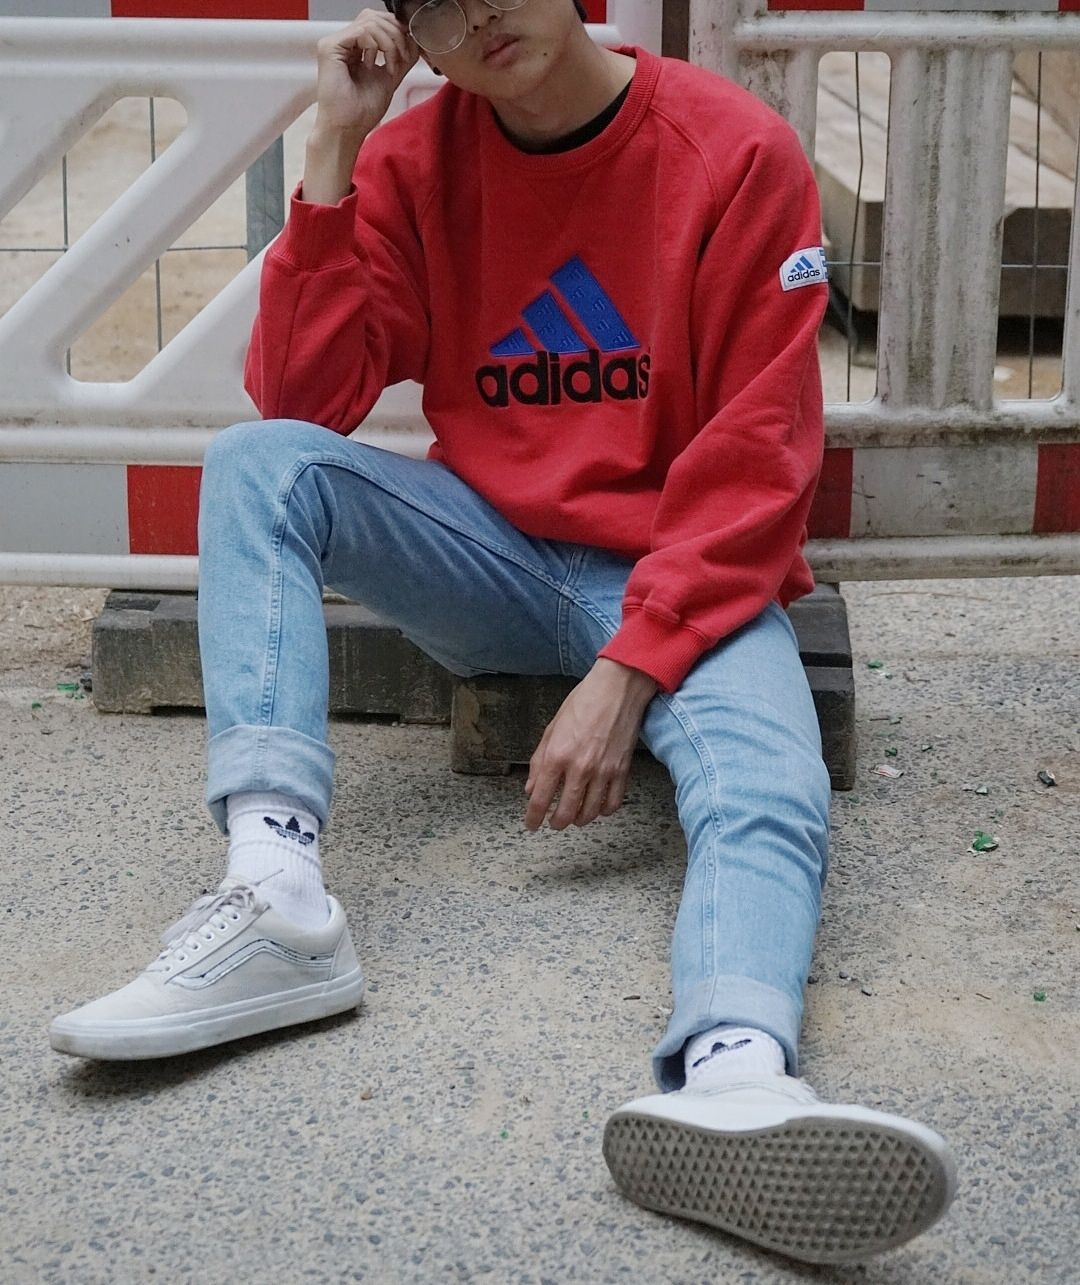 streetwear Top Scoring Posts from August WDYWT Threads is part of Fashion - streetwear Top Scoring Posts from August WDYWT Threads